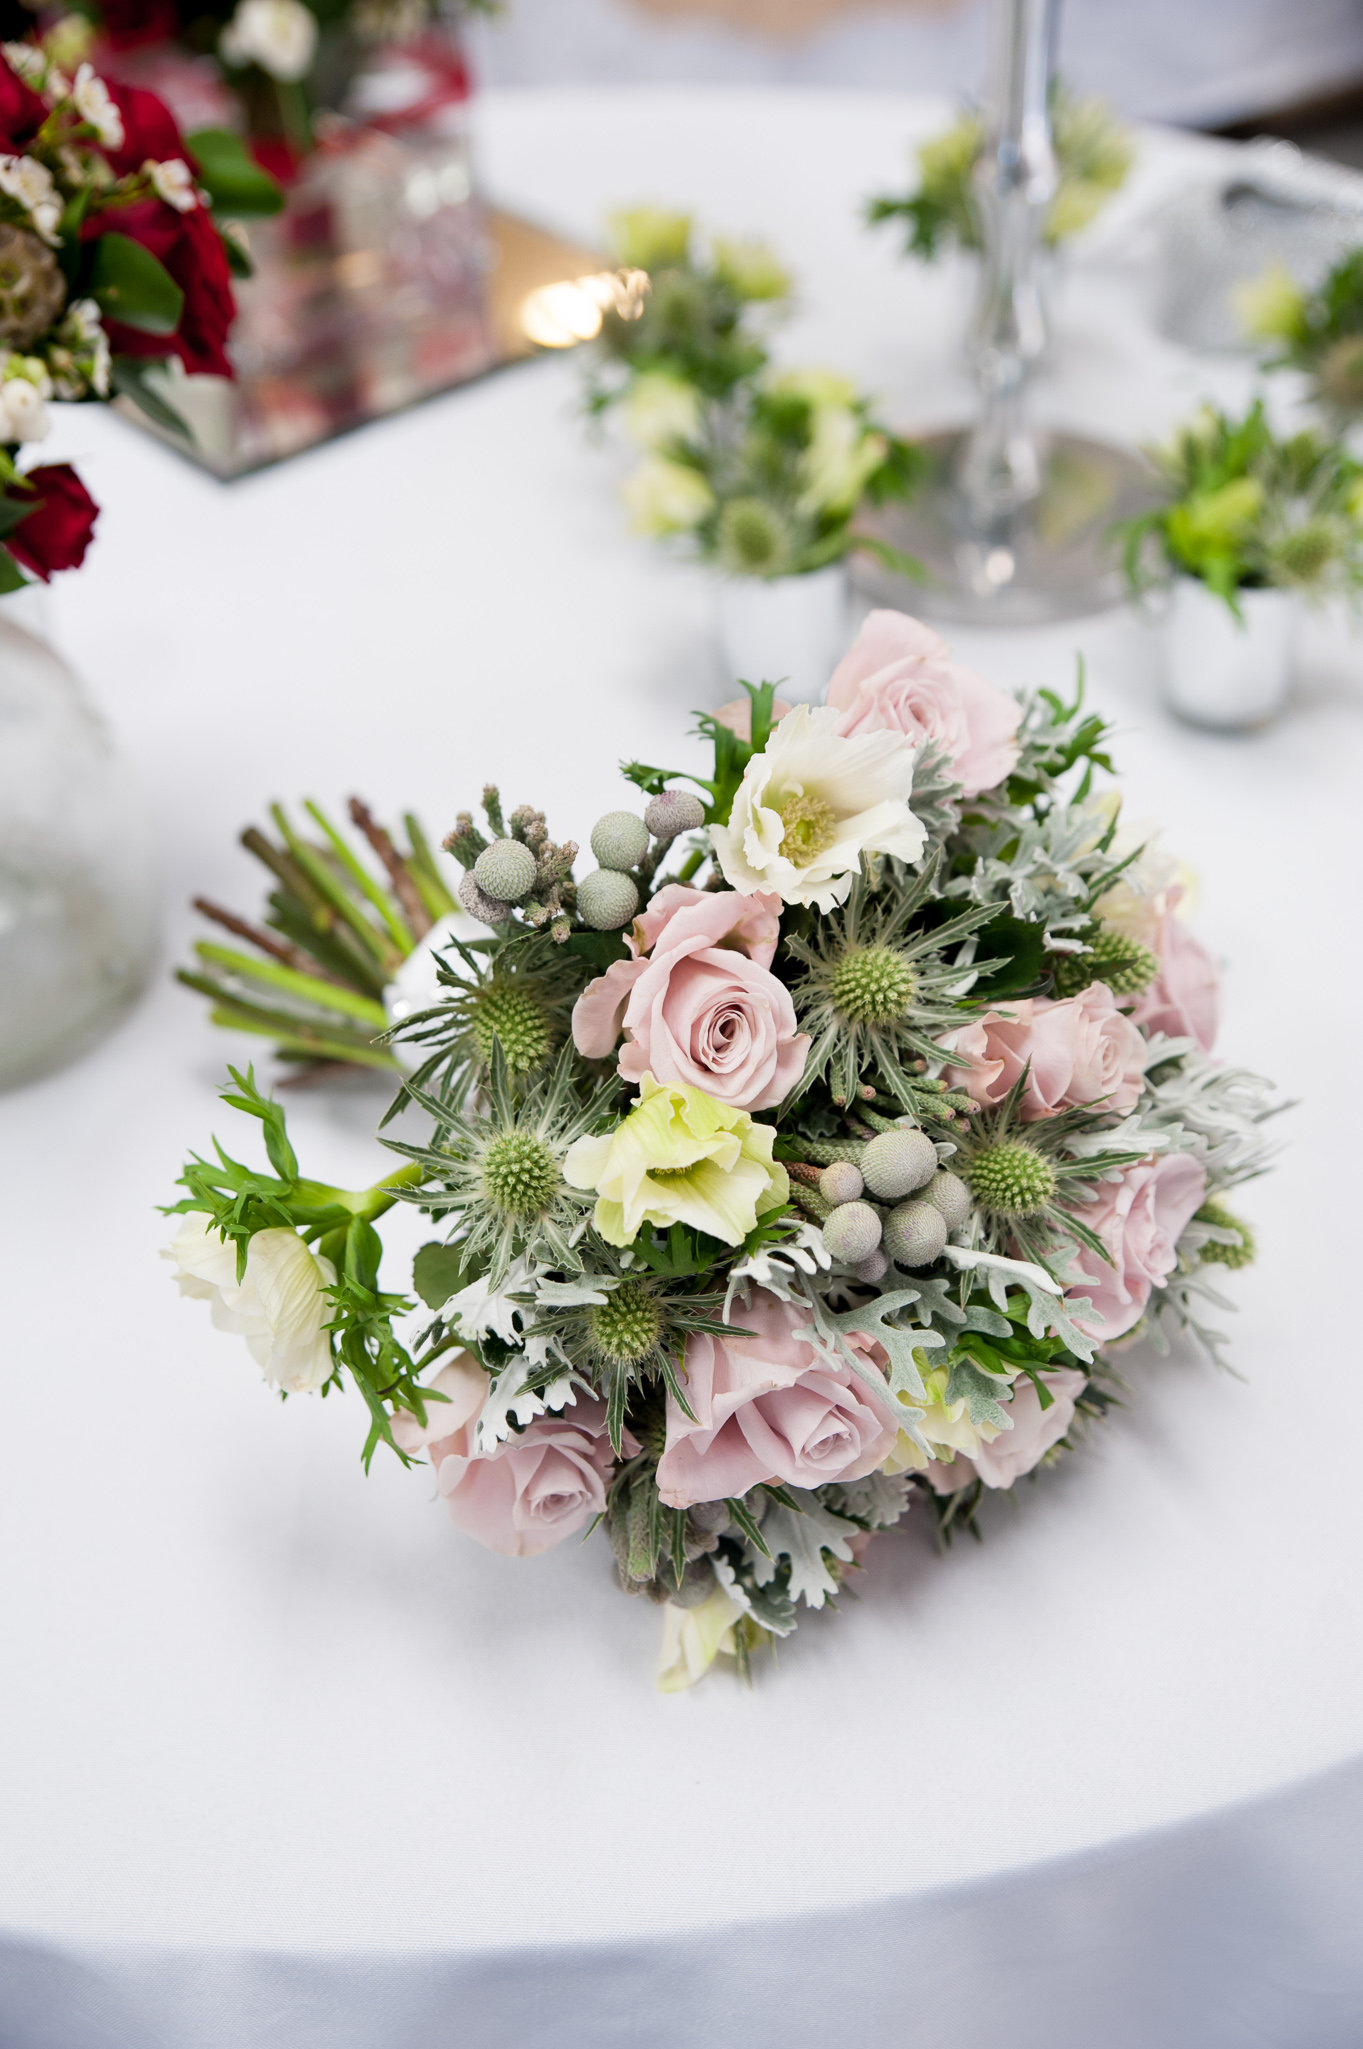 Bridal Flower Open Day – Bridal Flowers Direct